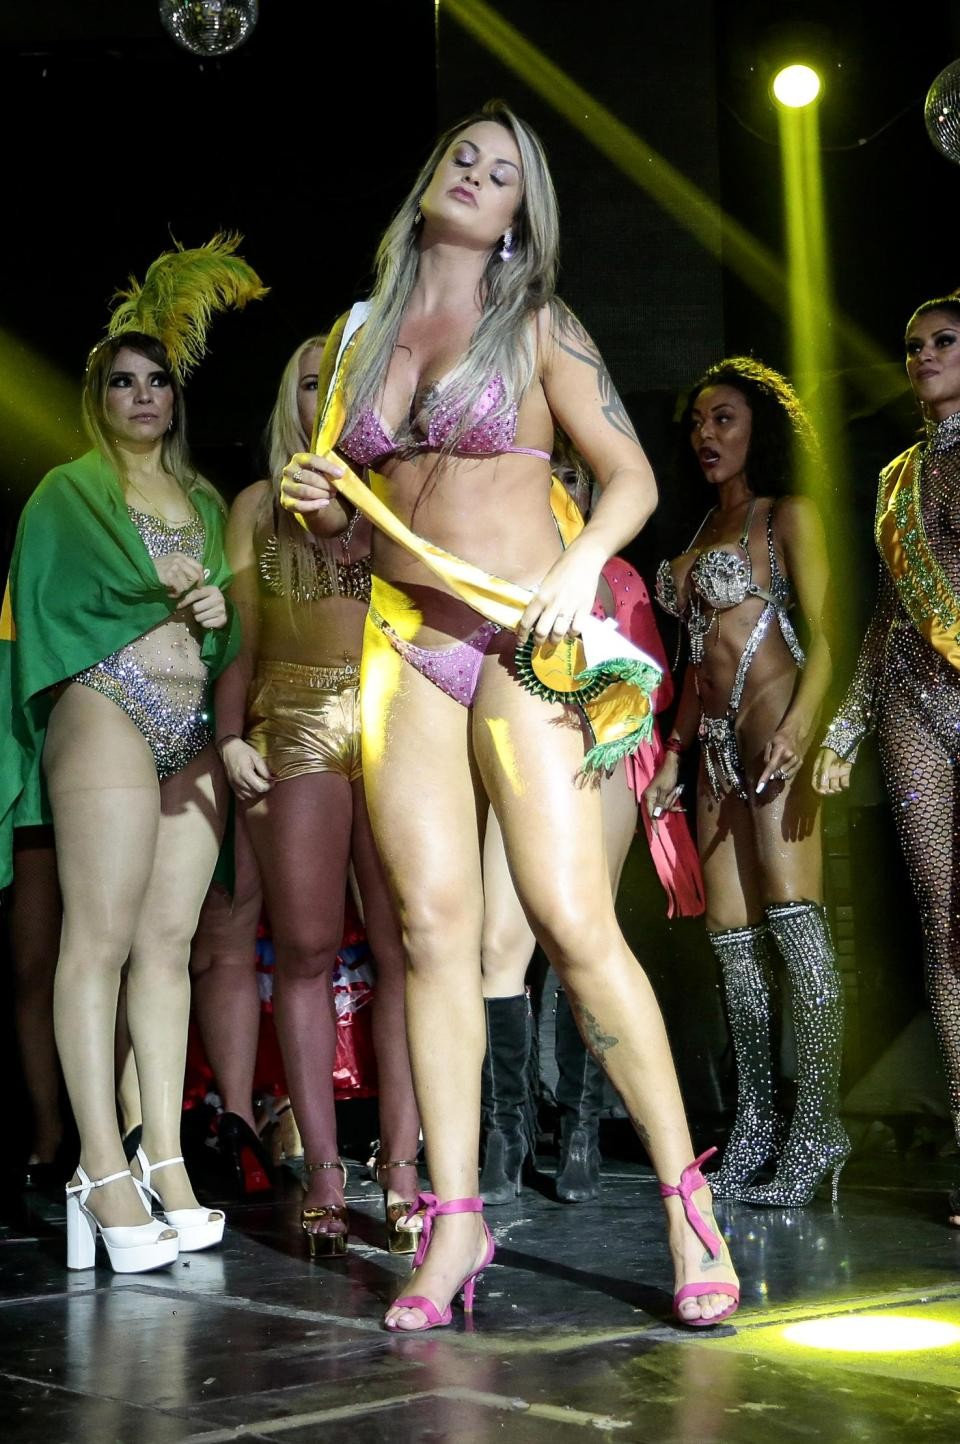 Miss BumBum Contestants fight on stage as one accuses rival of cheating with